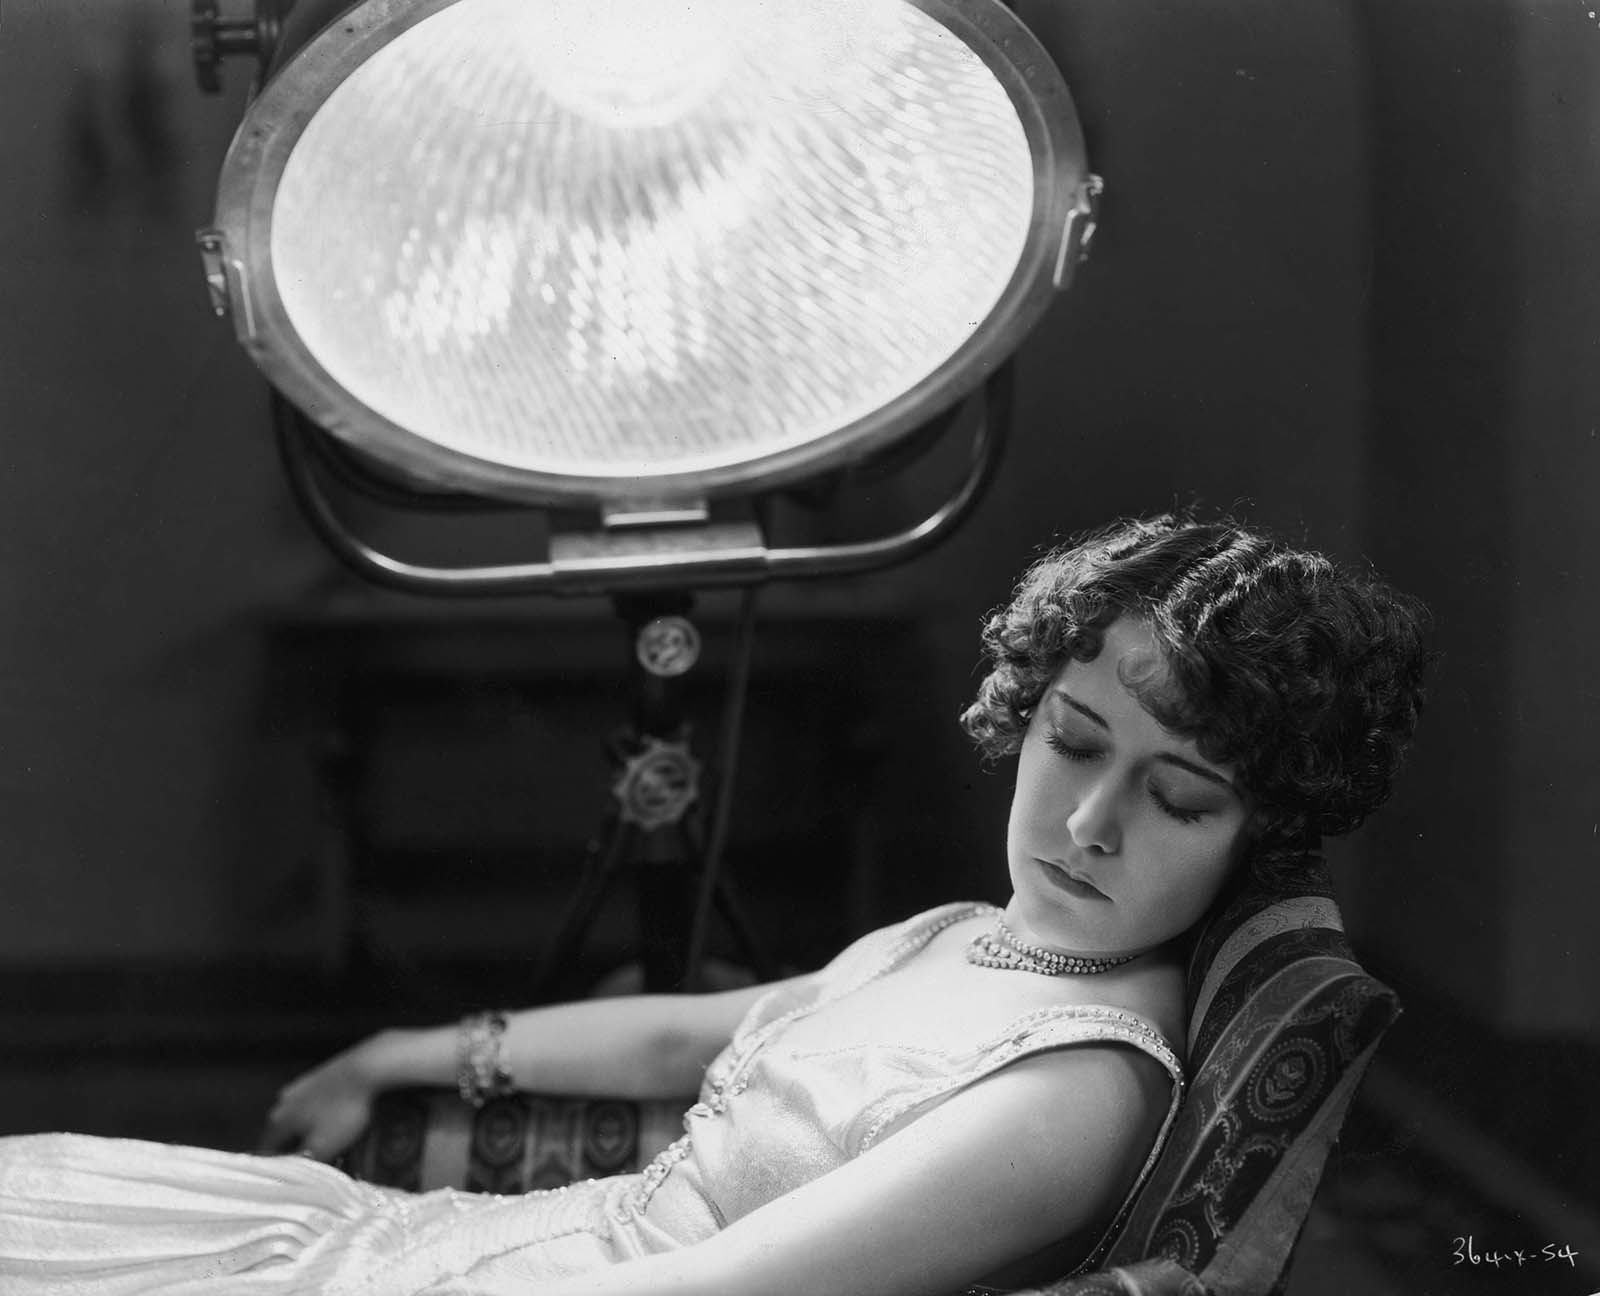 Hollywood film star, Dorothy Sebastian (1903 – 1957) undergoing treatment for bronchial congestion with a sun-ray lamp at MGM studios. 1930.